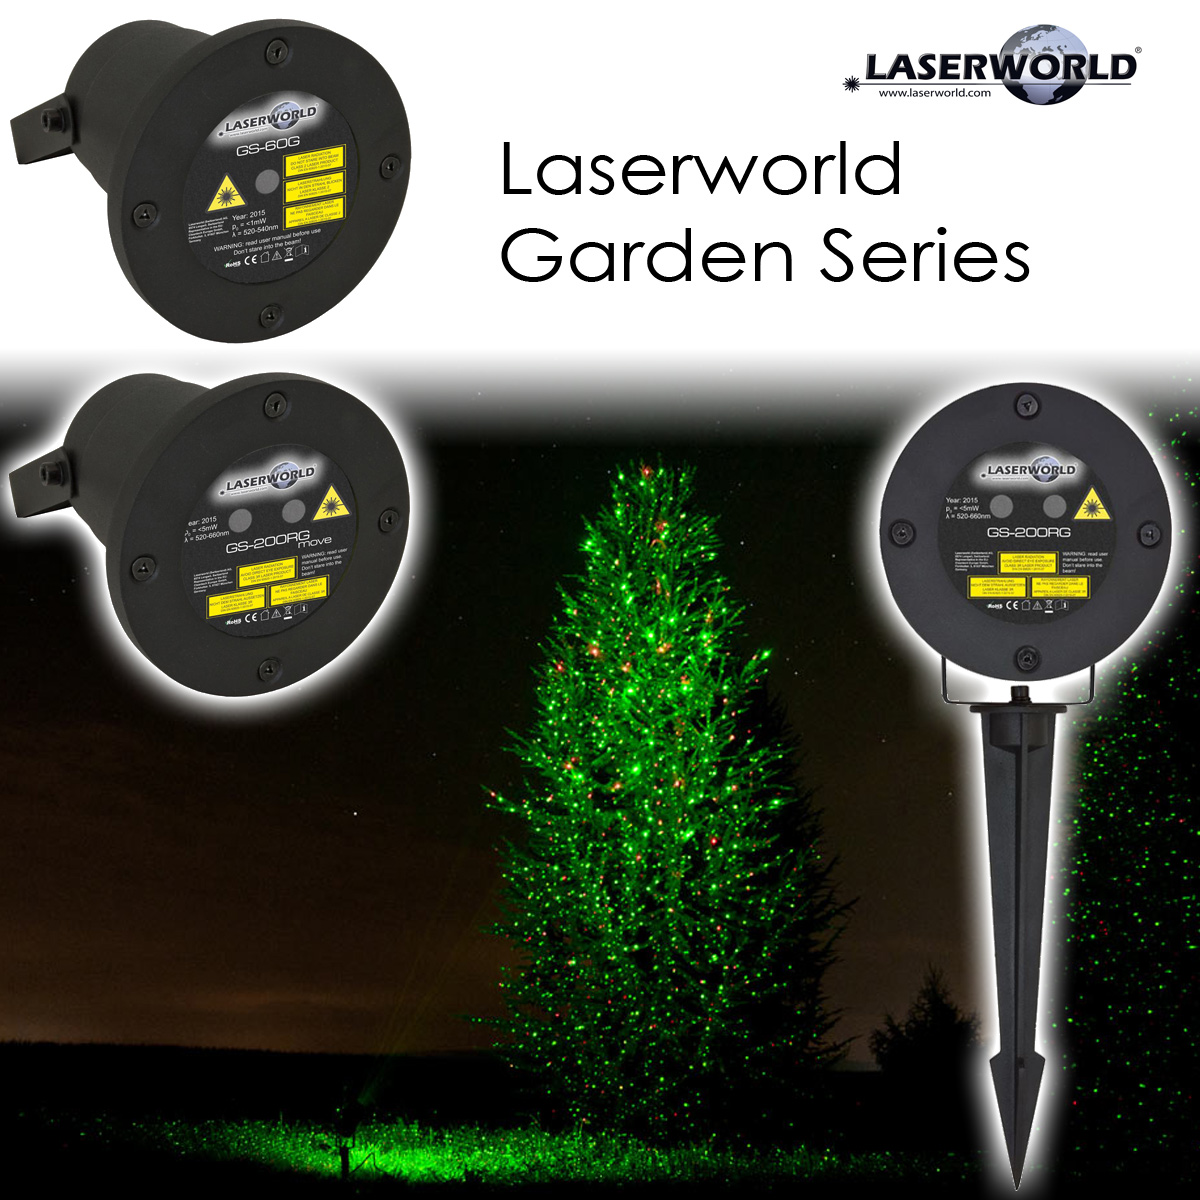 Laserworld Garden Series